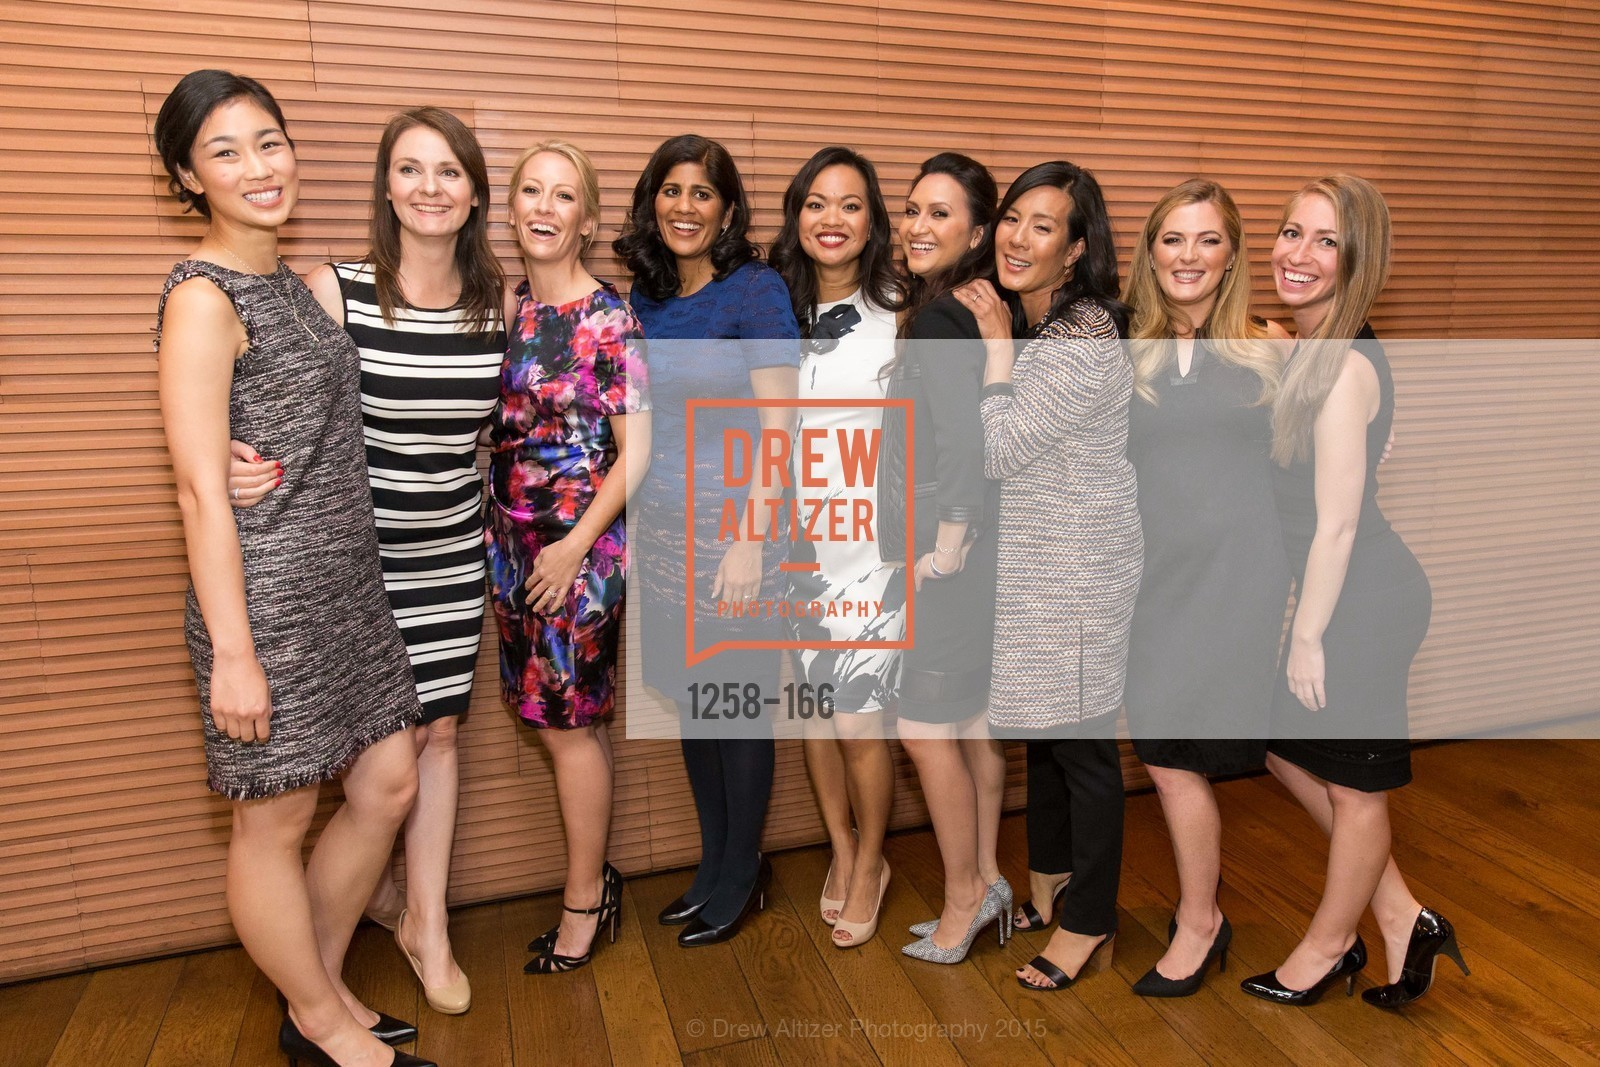 Tracy Chou, Melissa Zatlyn, Julia Hartz, Selina Tobaccowala, Mary Grove, Sarah Haider, Aileen Lee, Elizabeth Iorne, Elle Women in Tech, Prospect. 300 Spear Street, June 15th, 2015,Drew Altizer, Drew Altizer Photography, full-service agency, private events, San Francisco photographer, photographer california